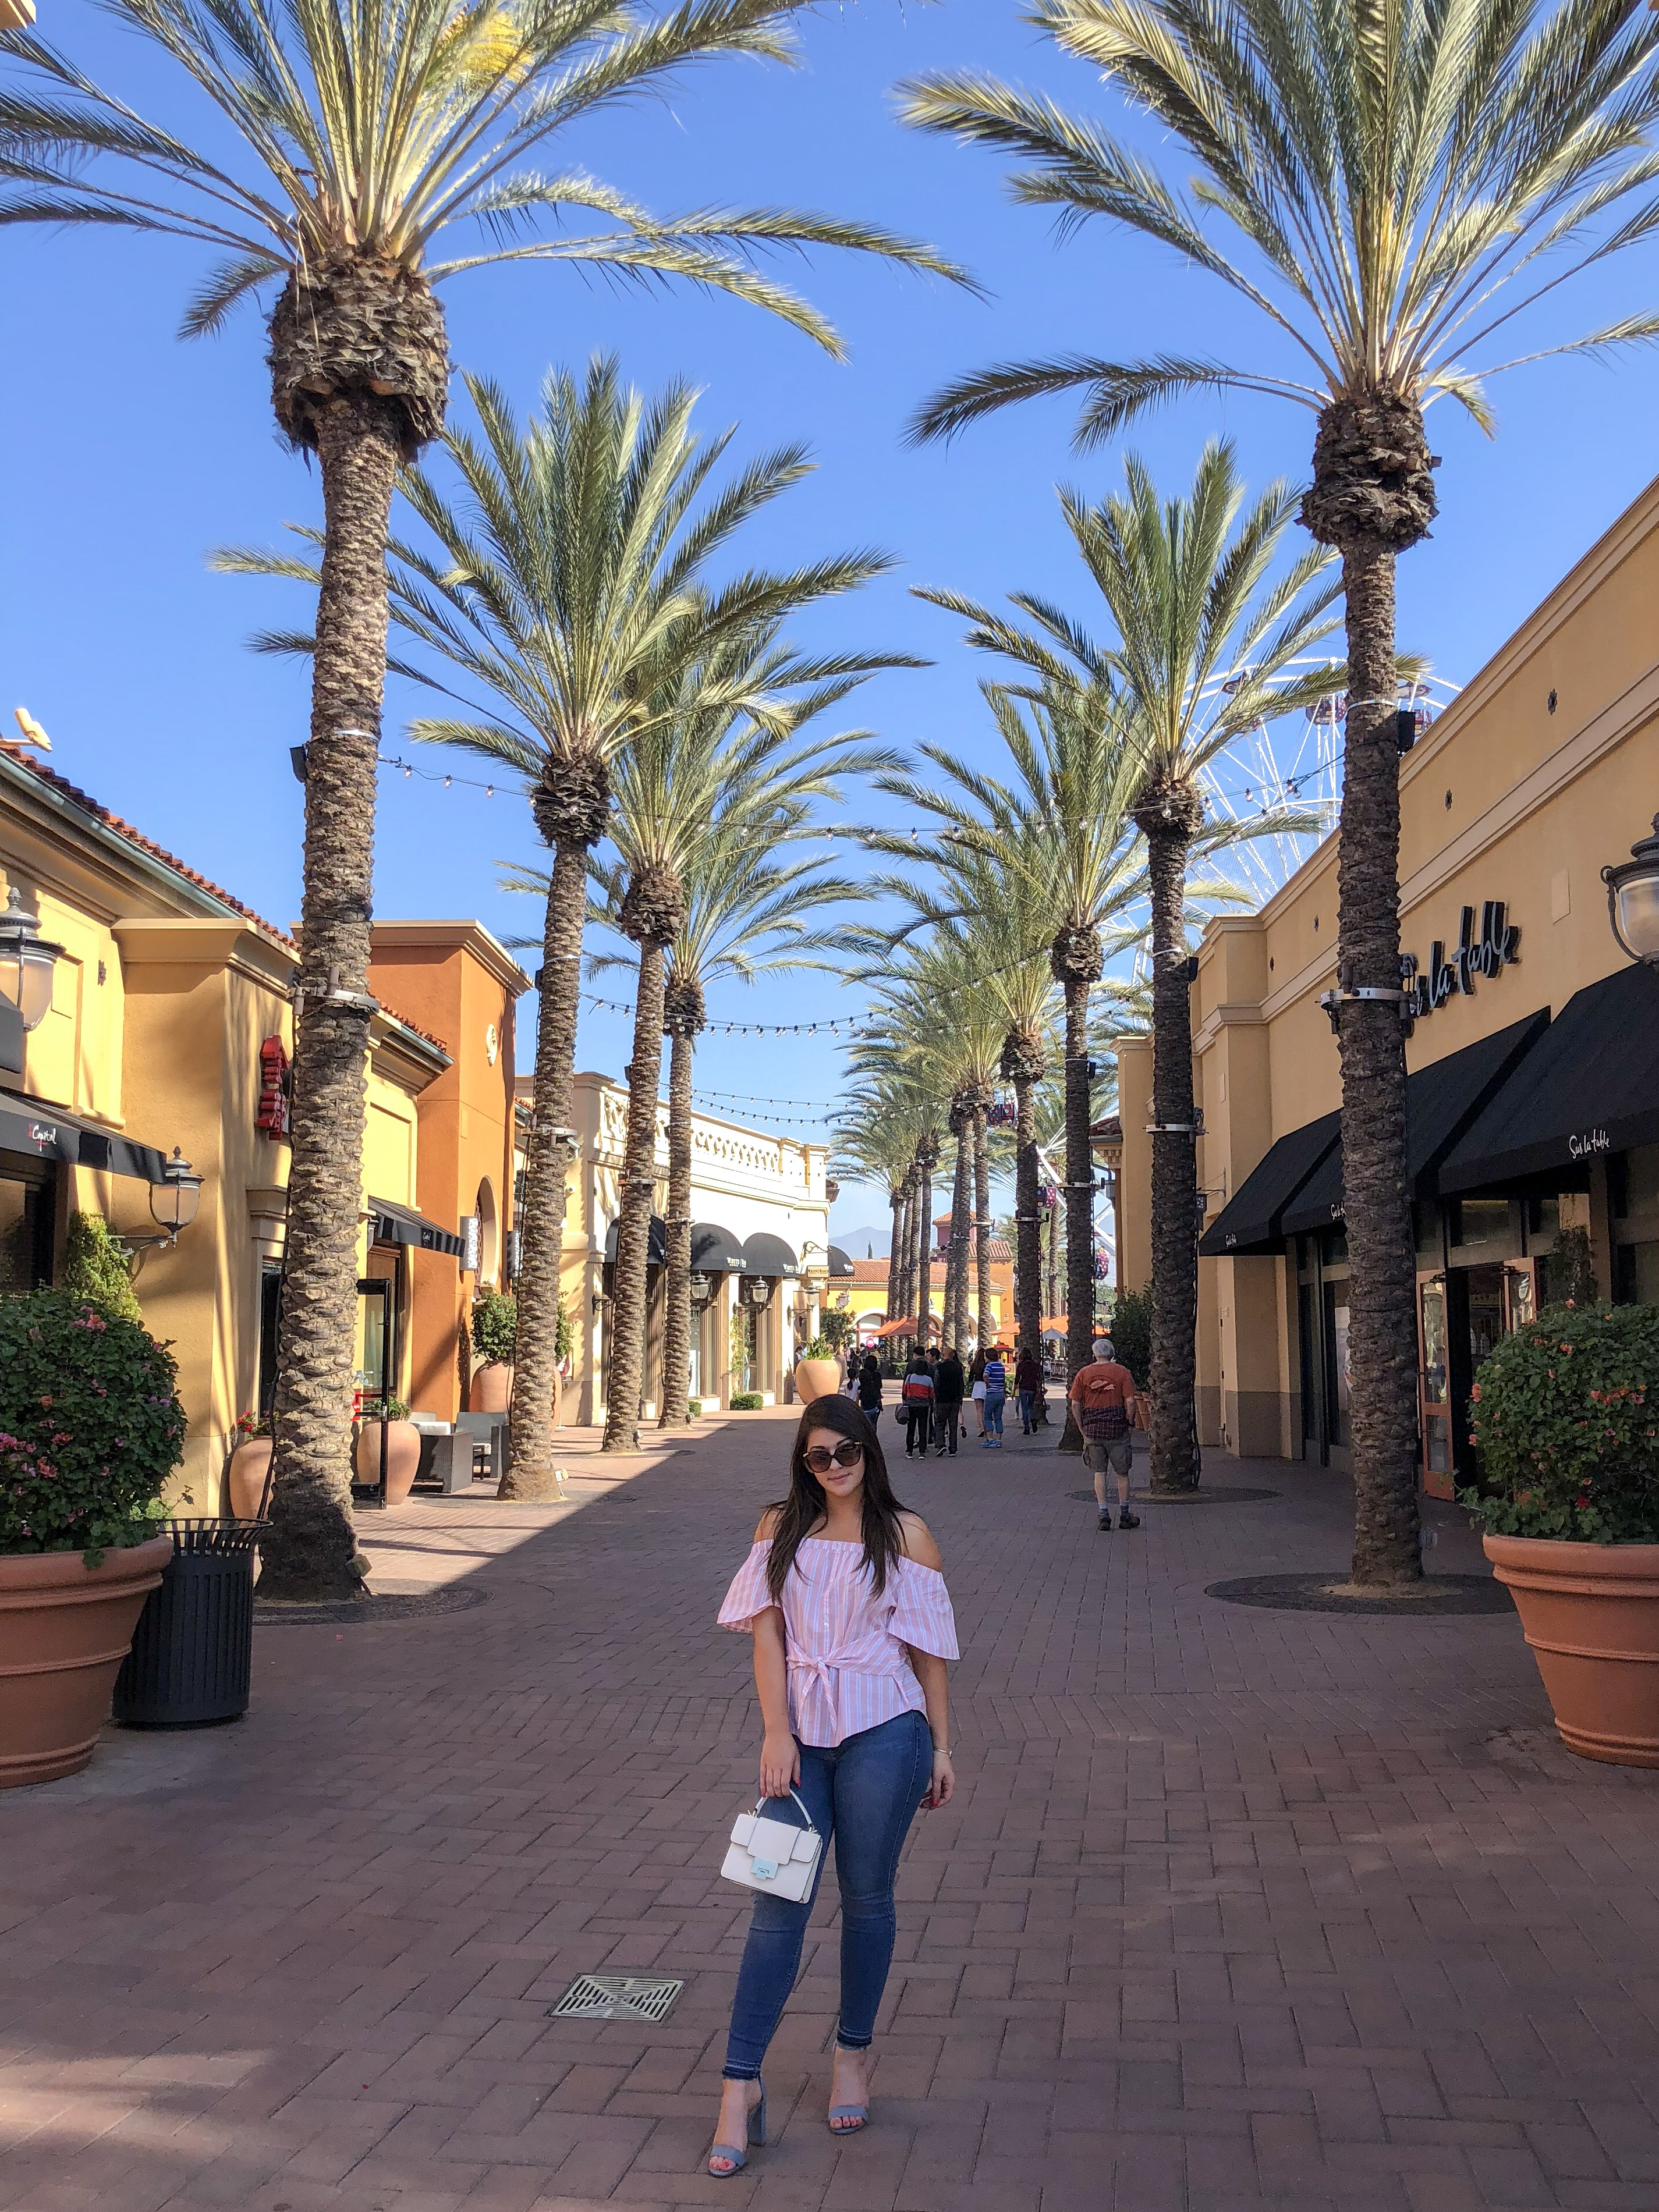 Irvine Spectrum Center - Beyond Casual B